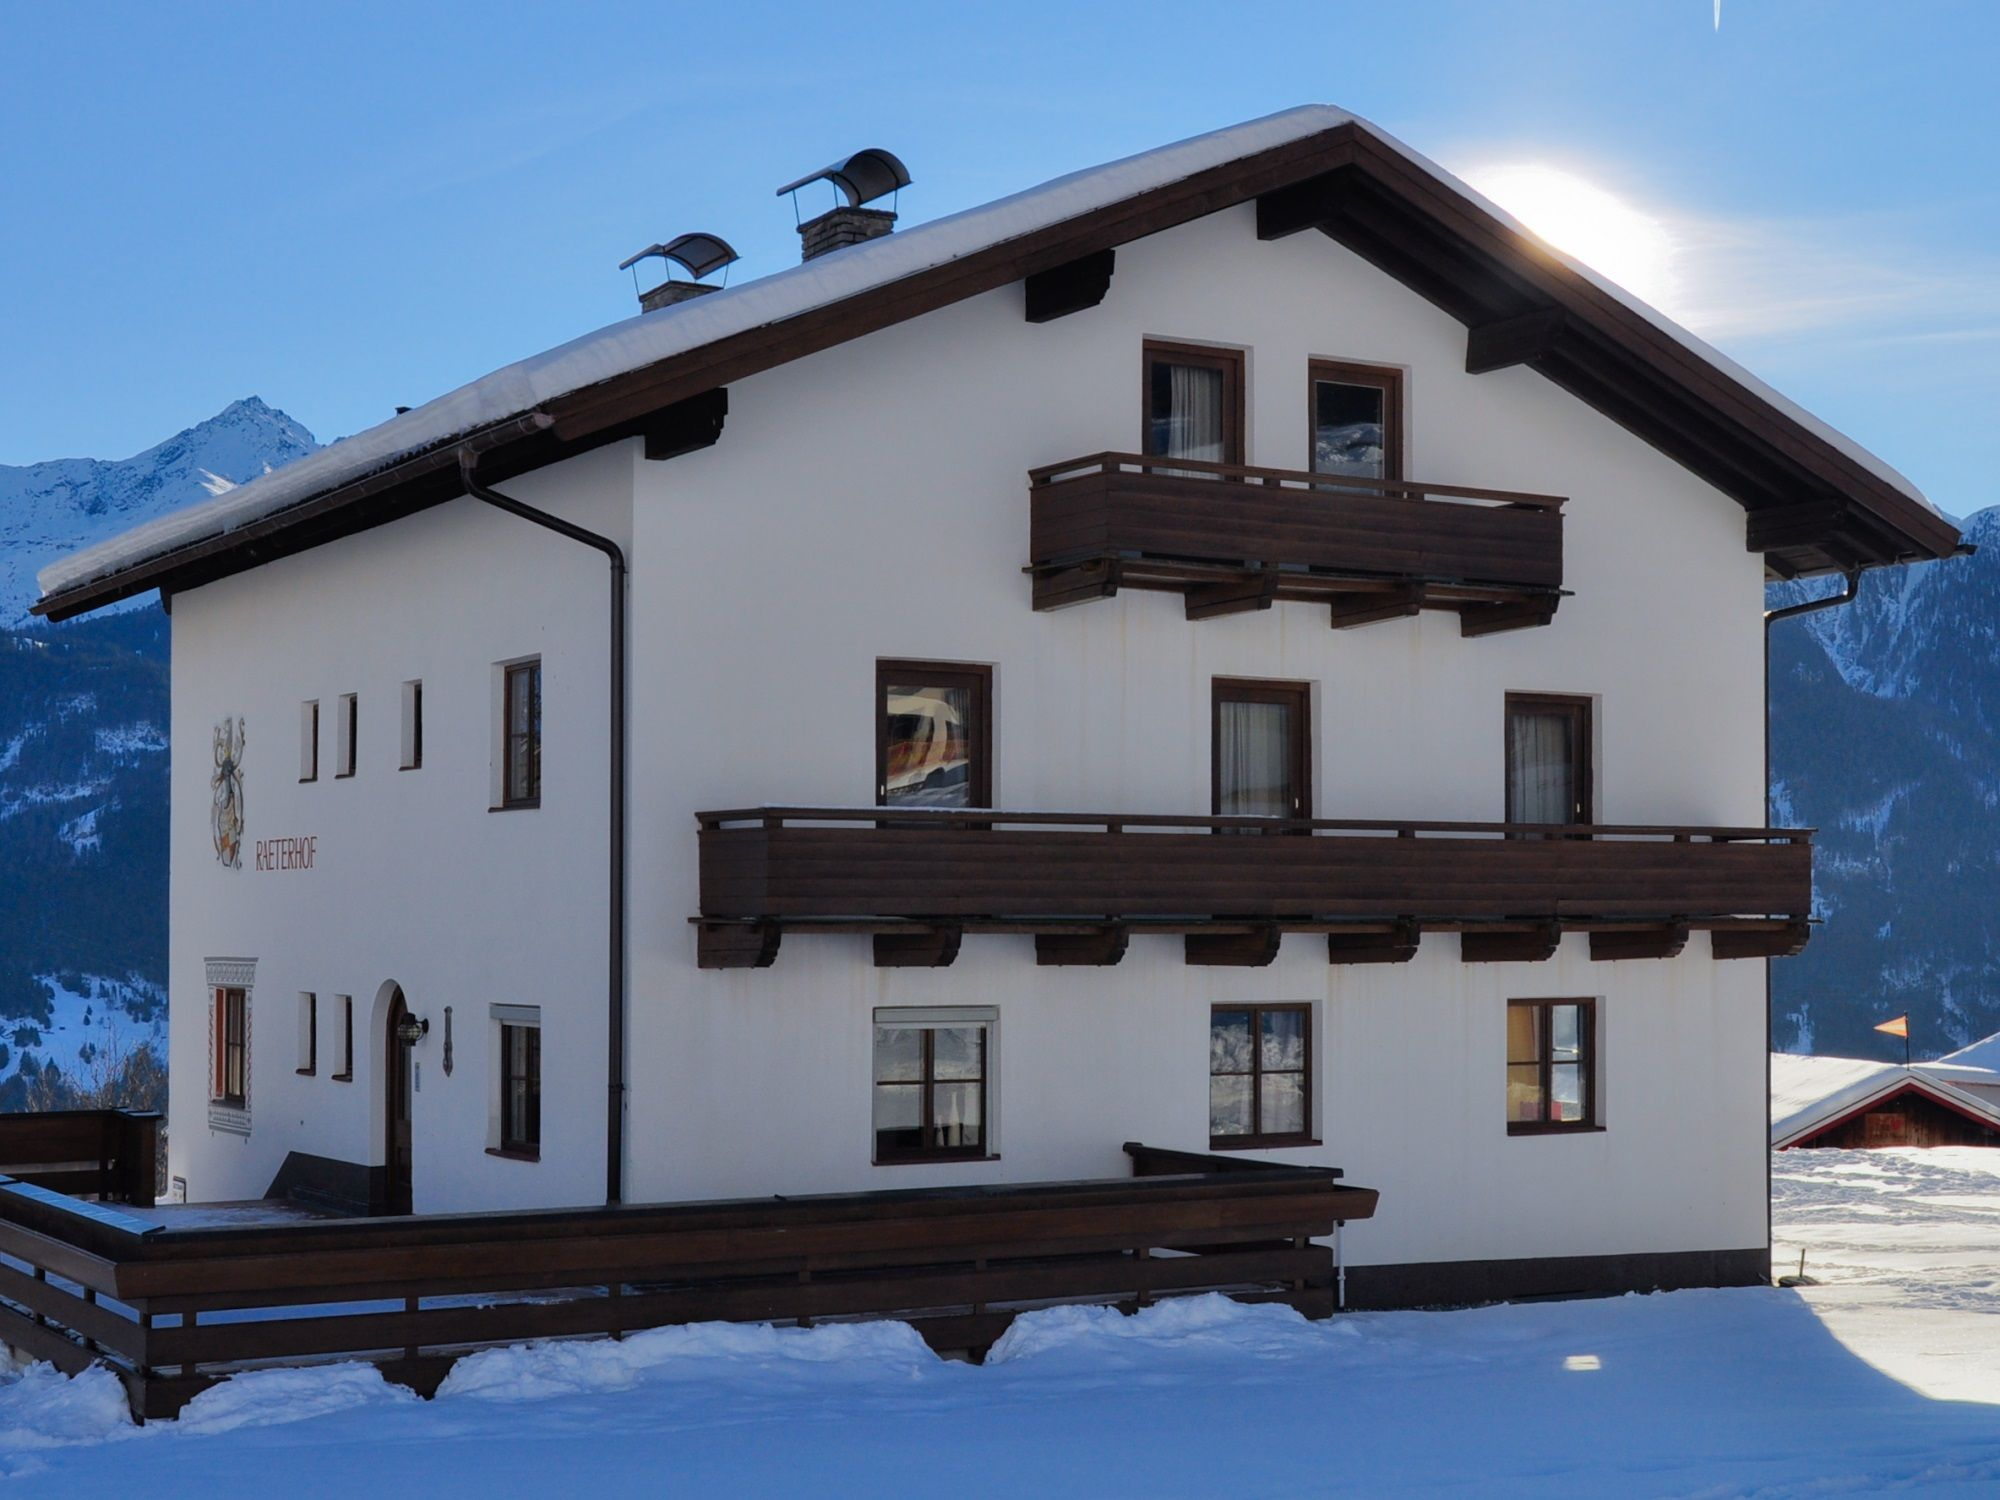 Chalet Fiss - Chalet Raterhof inclusief catering